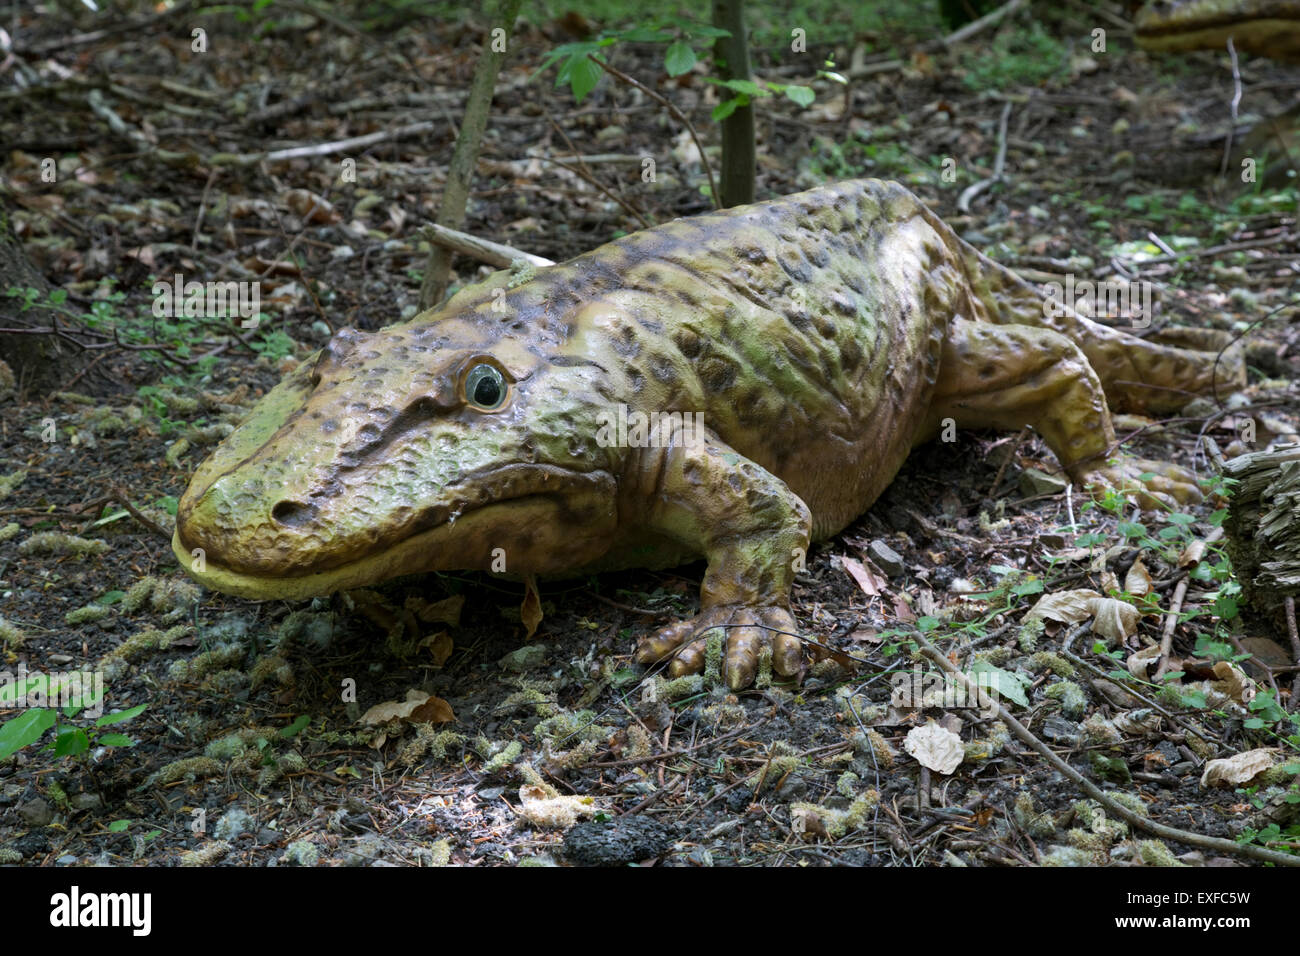 Image result for images of eryops